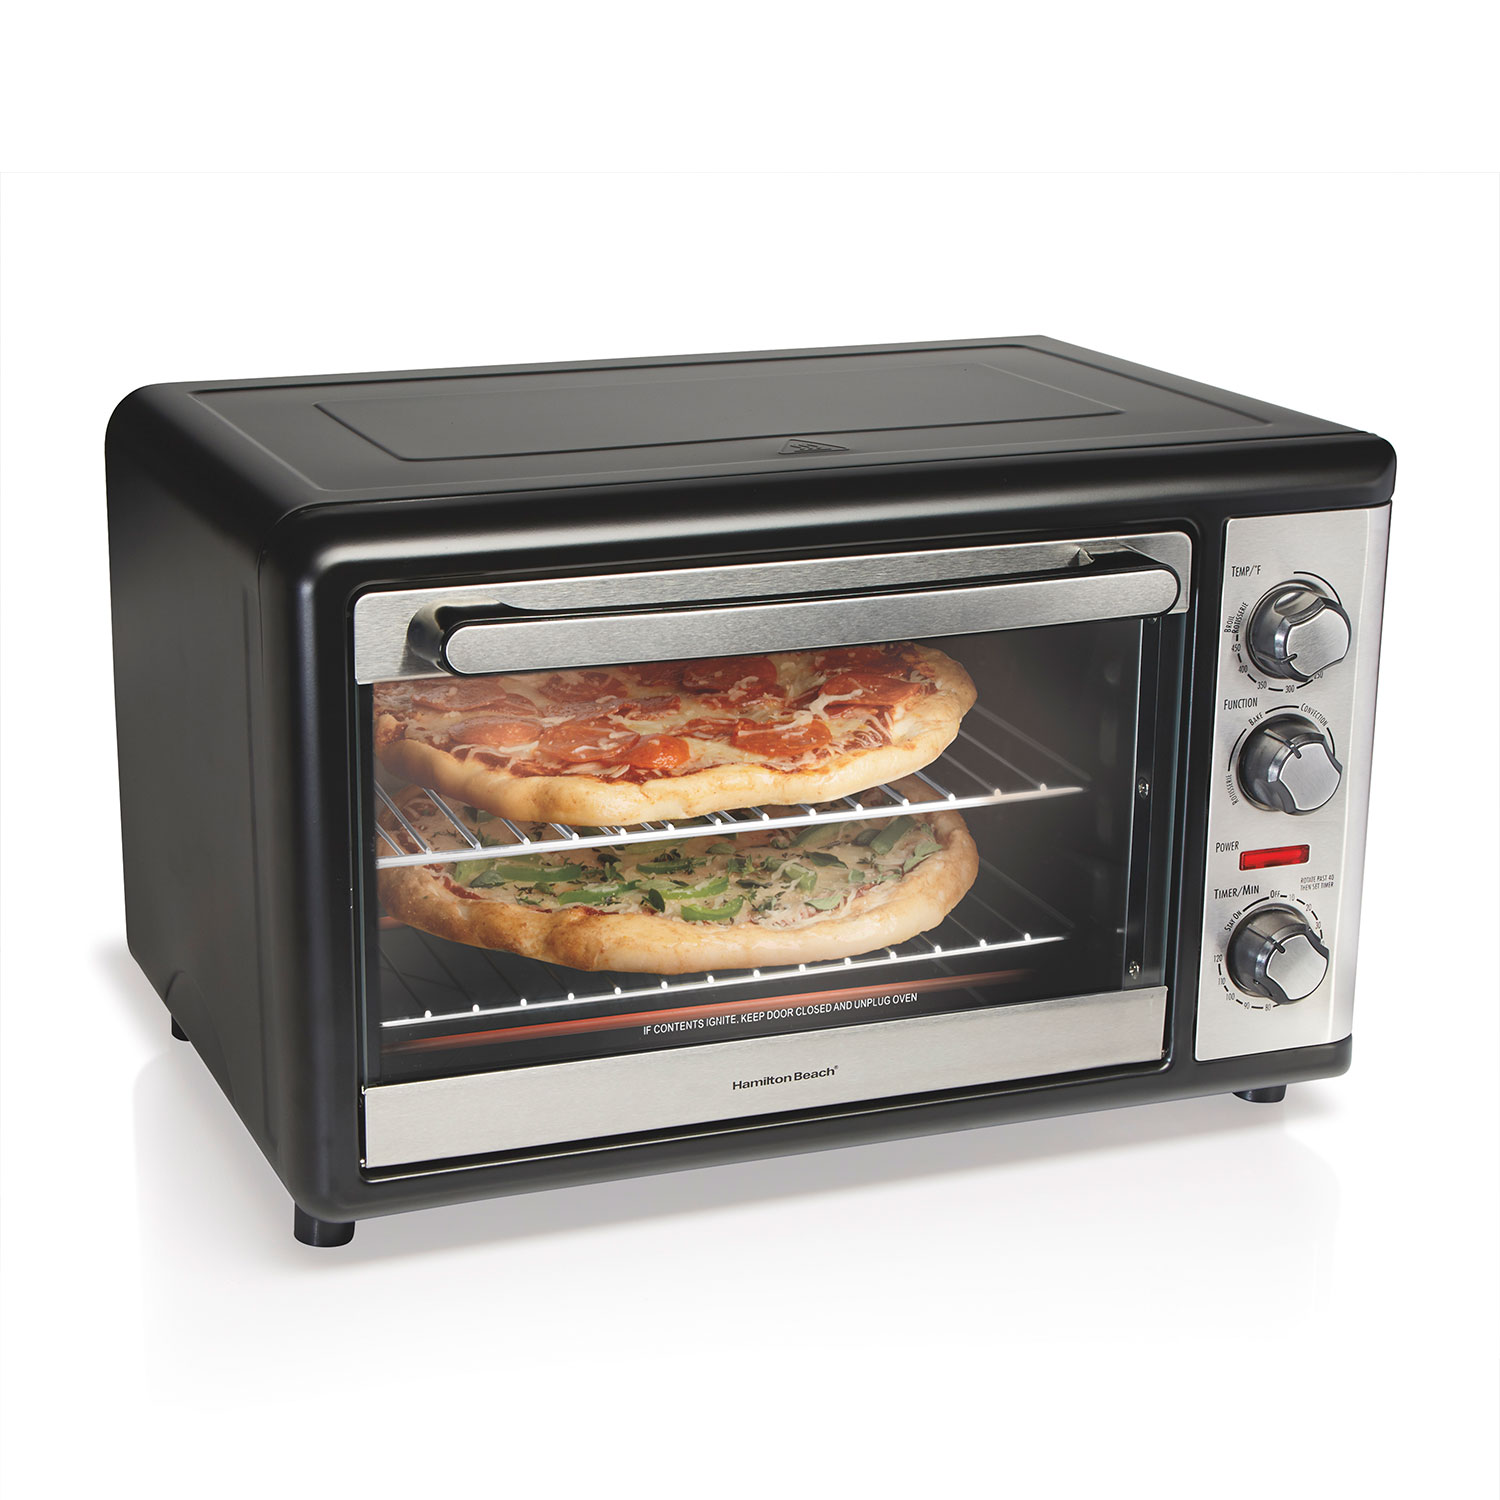 Revolving Rotisserie Countertop Oven with Convection (31108)